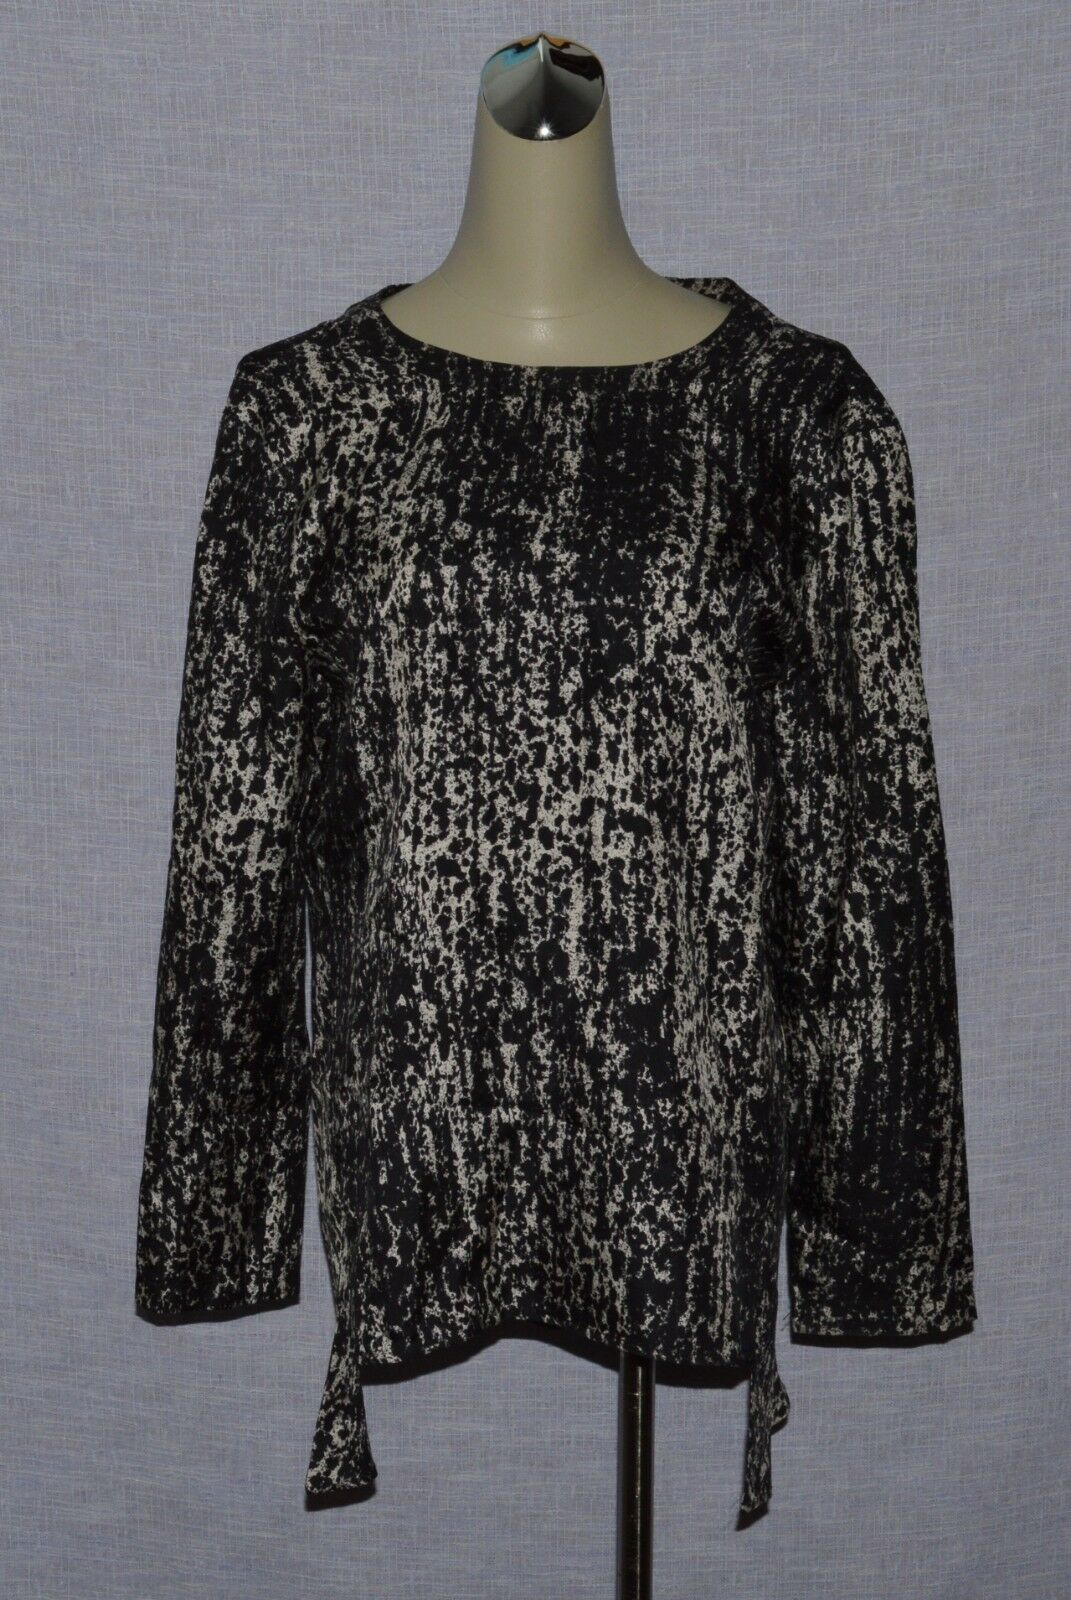 SPORTMAX PURA SETA SZ S SMALL 100% SILK LONG SLEEVE BLOUSE TOP